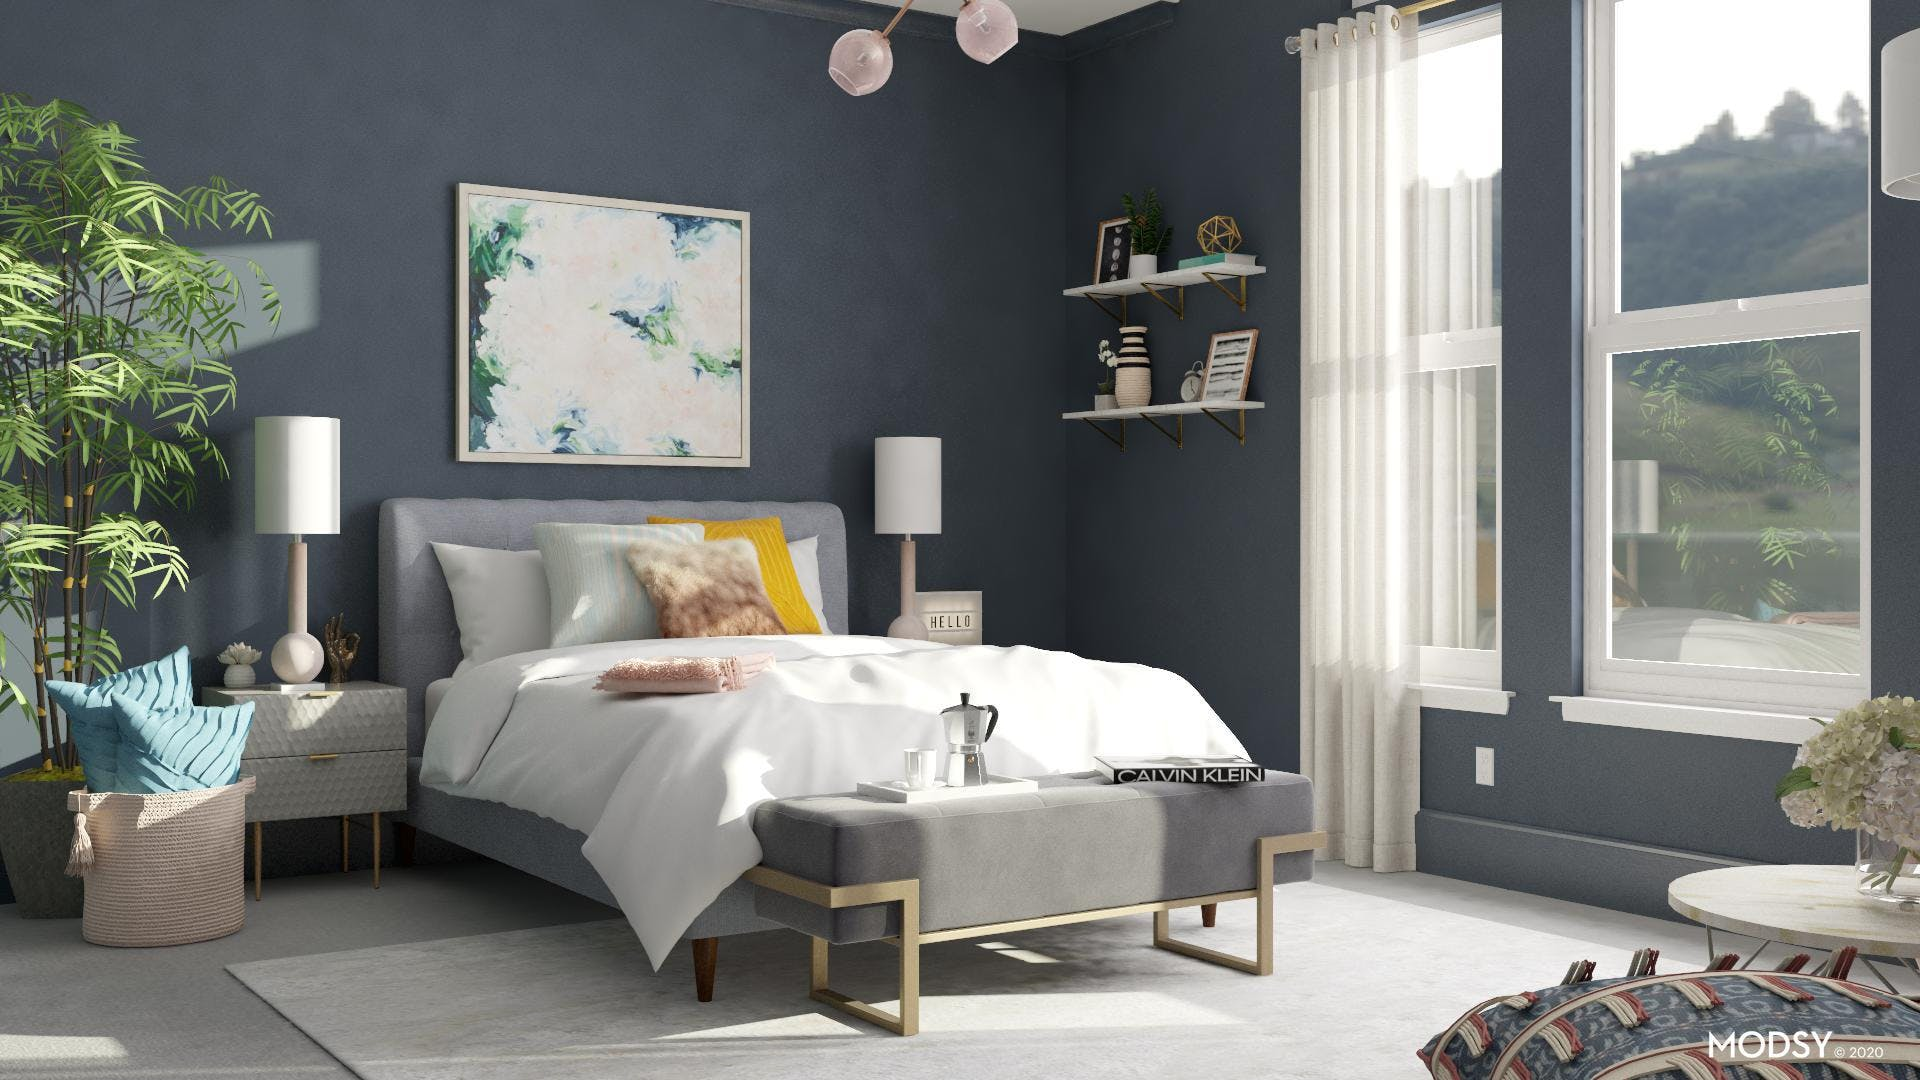 Modern Bedroom Design Ideas And Styles From Modsy Designers